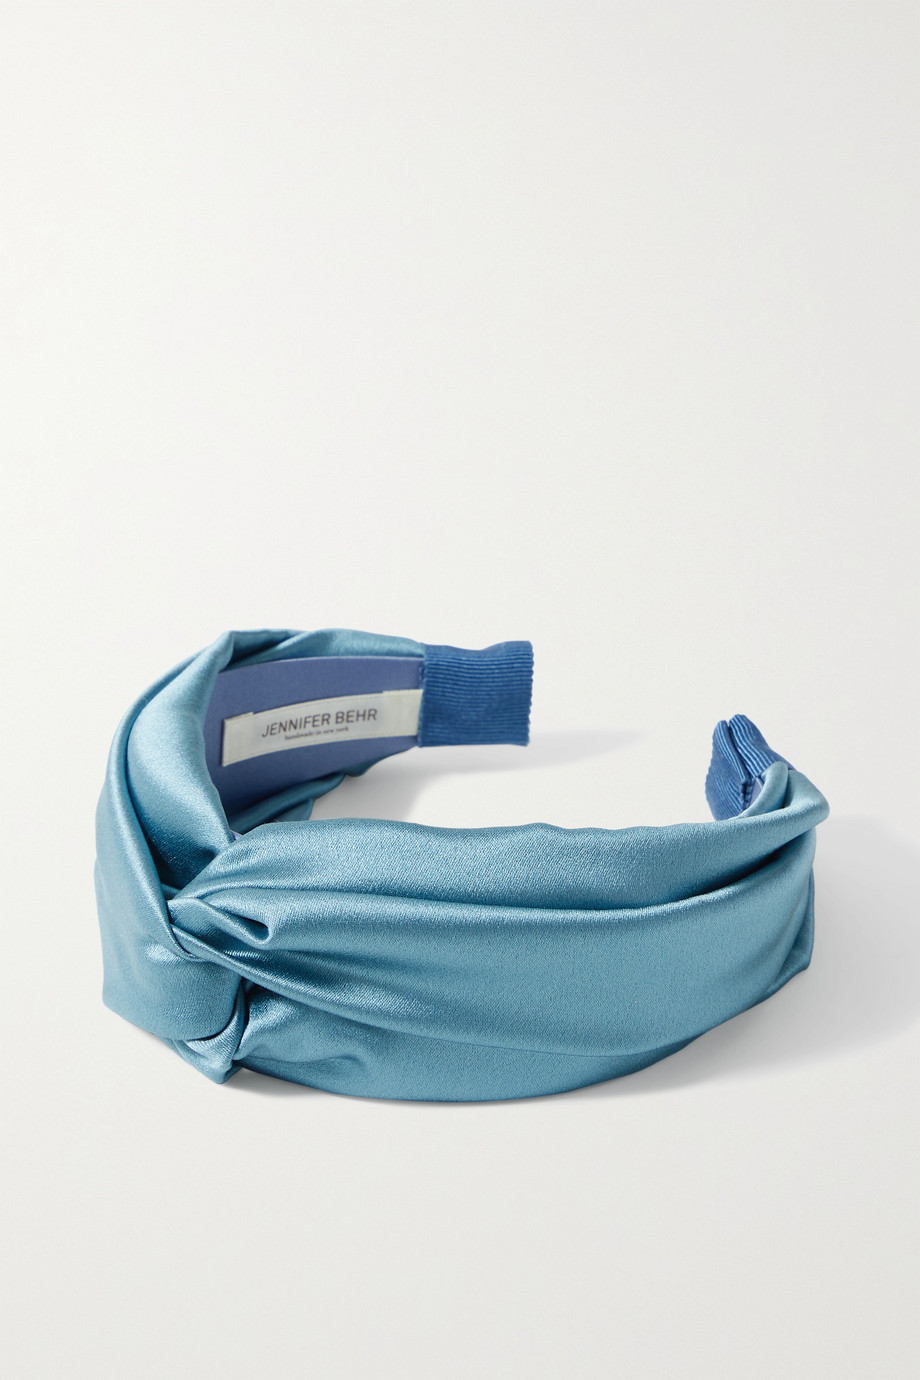 JENNIFER BEHR Twist silk-satin headband